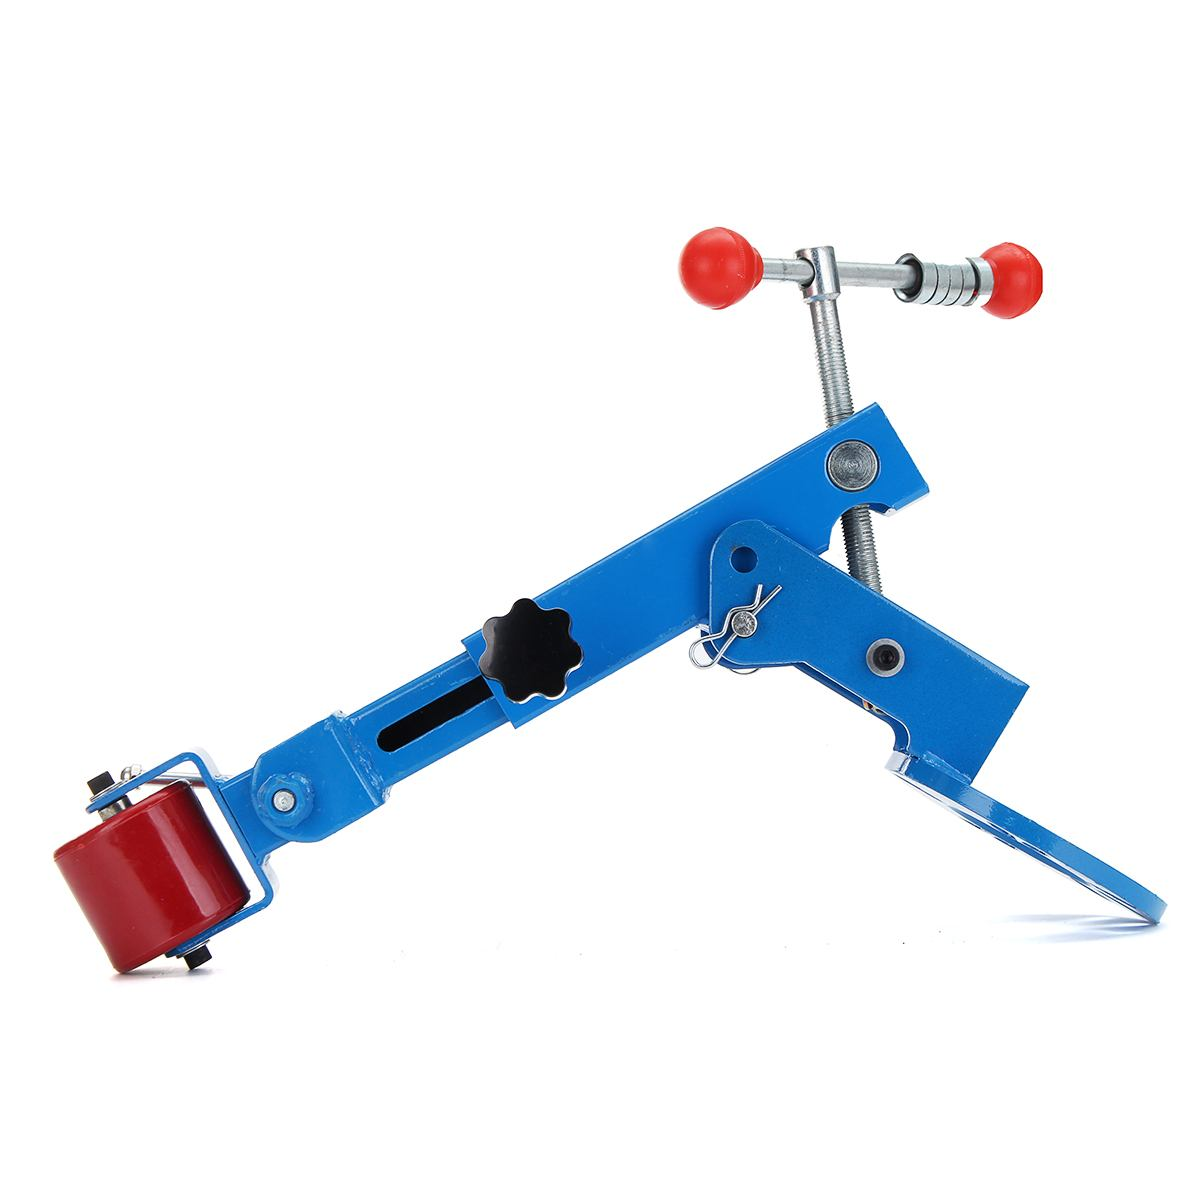 Auto Vehicle Roll Fender Reforming Extending Expander Tool Wheel Arch Roller Flaring Former Heavy Duty